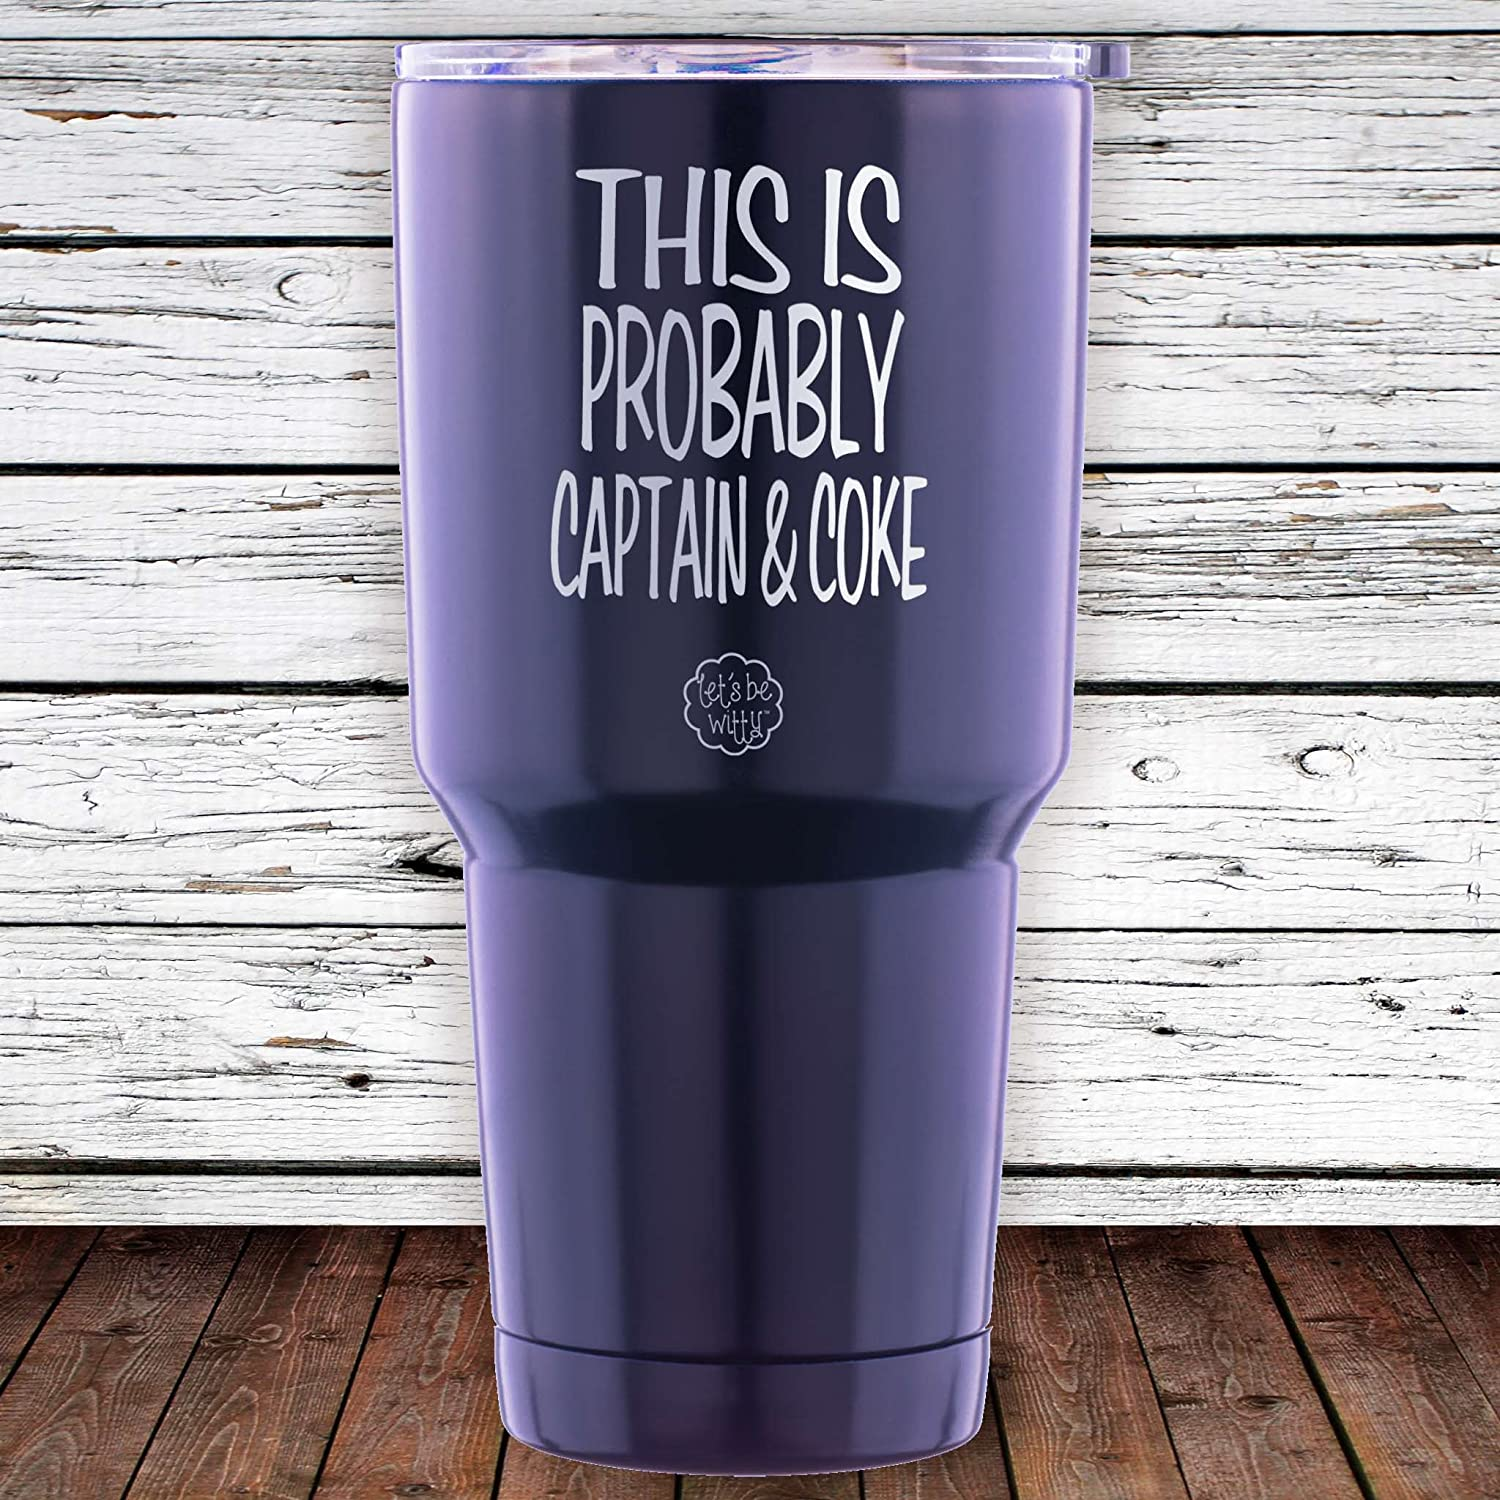 ad9159d1daf This is Probably Captain & Coke Stainless Steel Tumbler with Lid - Large 30  oz Vacuum Insulated Travel Mug - Funny Tumblers for Hot Coffee and Cold  Drinks ...